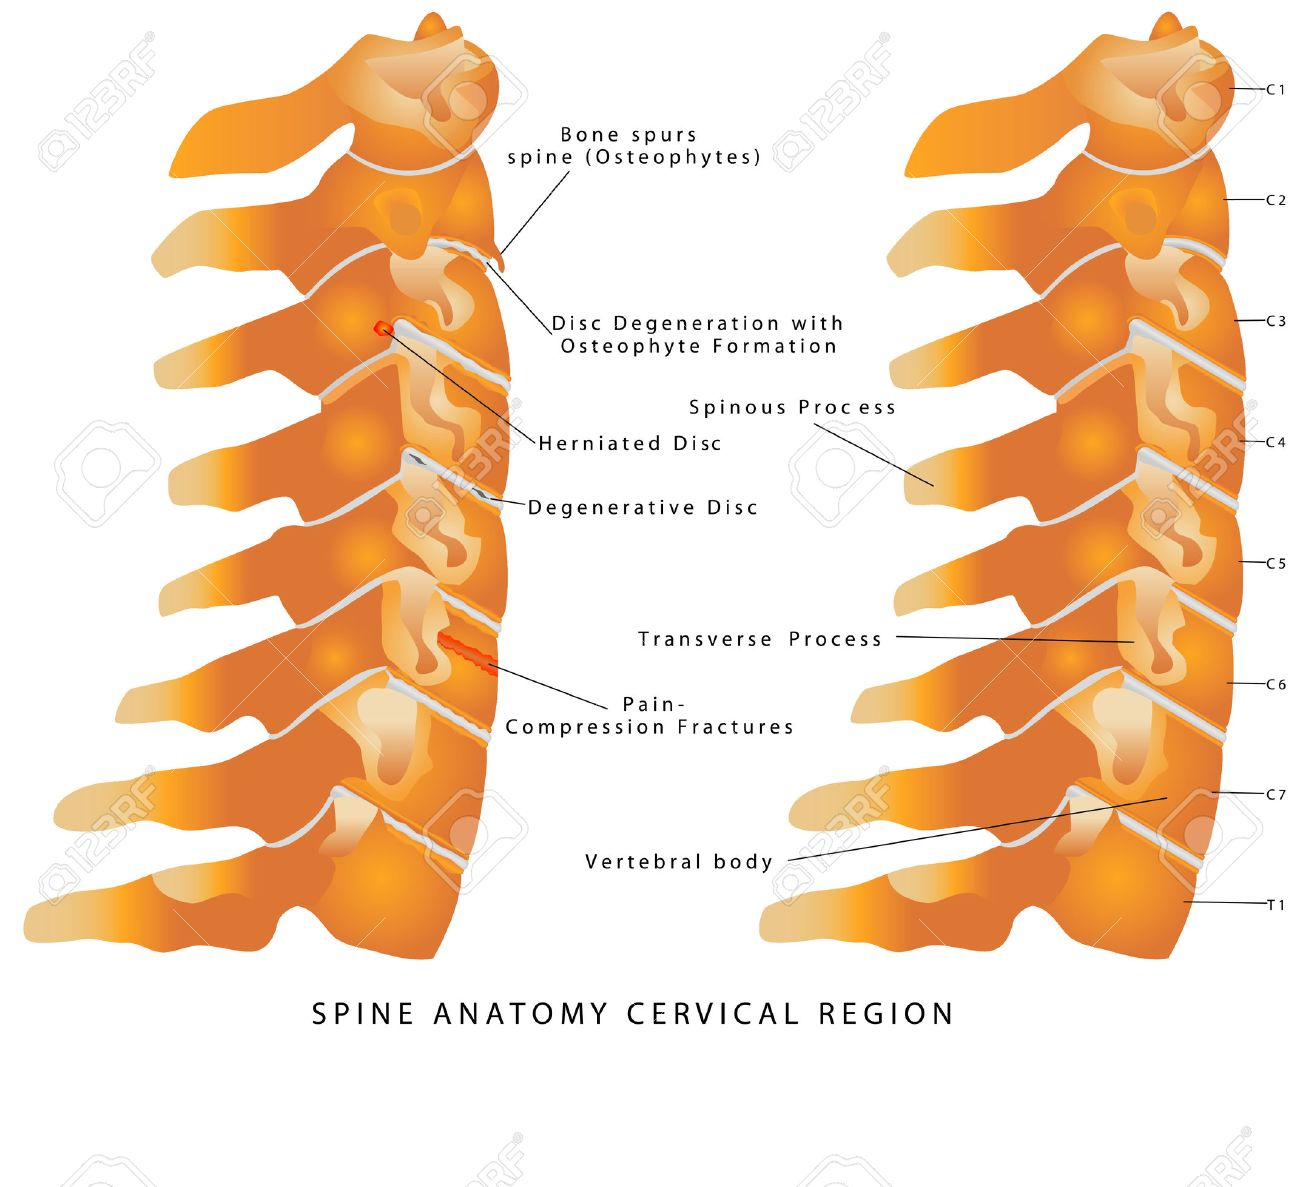 Cervical Spine. Spine Anatomy Cervical Region. Cervical Spine ...